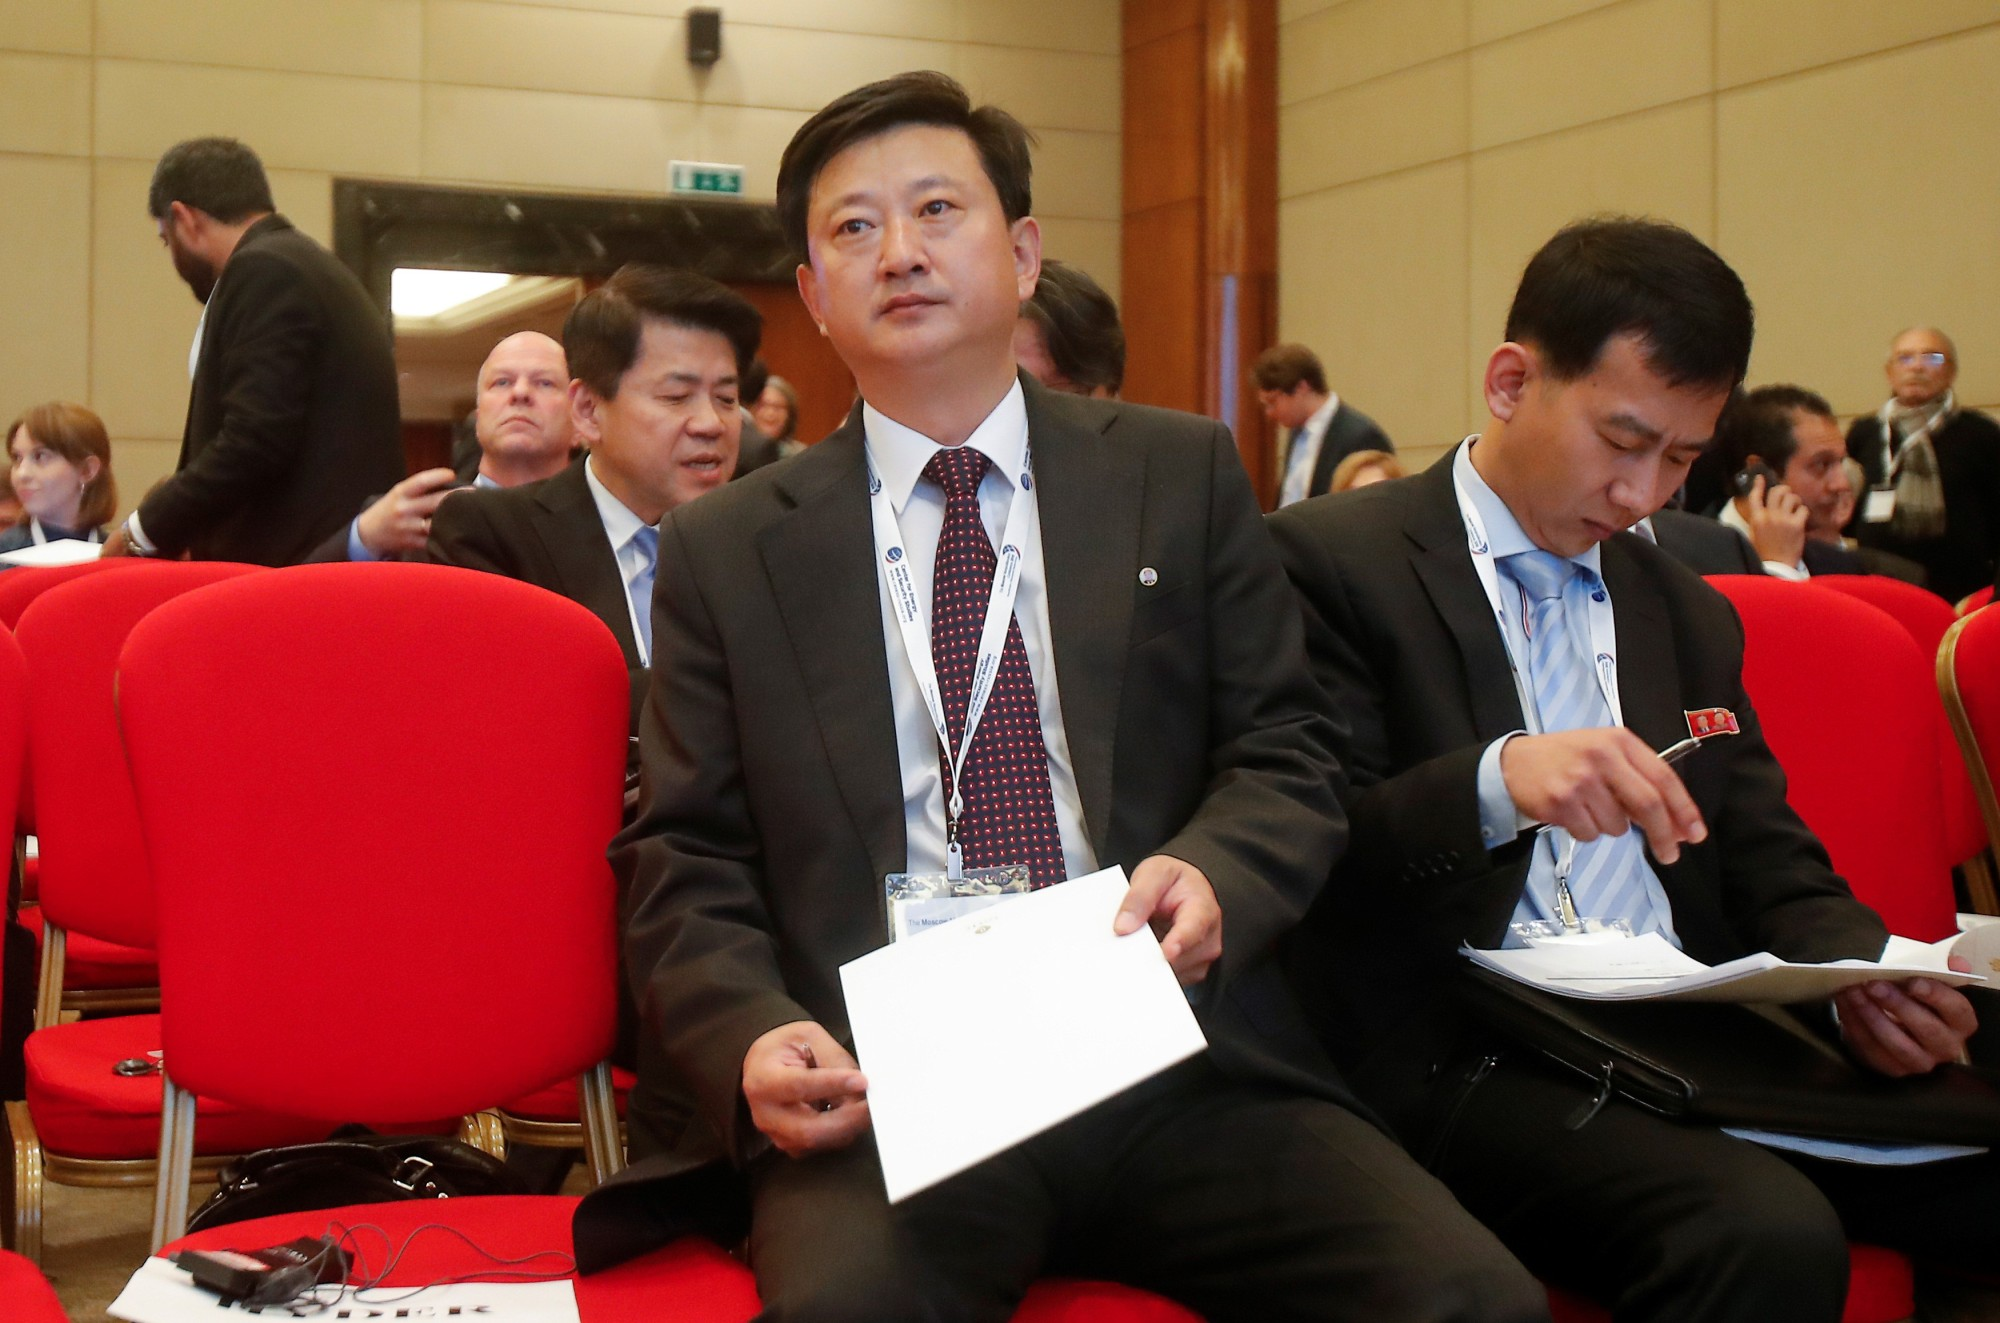 North Korean diplomat Jo Chol Su attends the Moscow Nonproliferation Conference in the Russian capital on Friday. | REUTERS